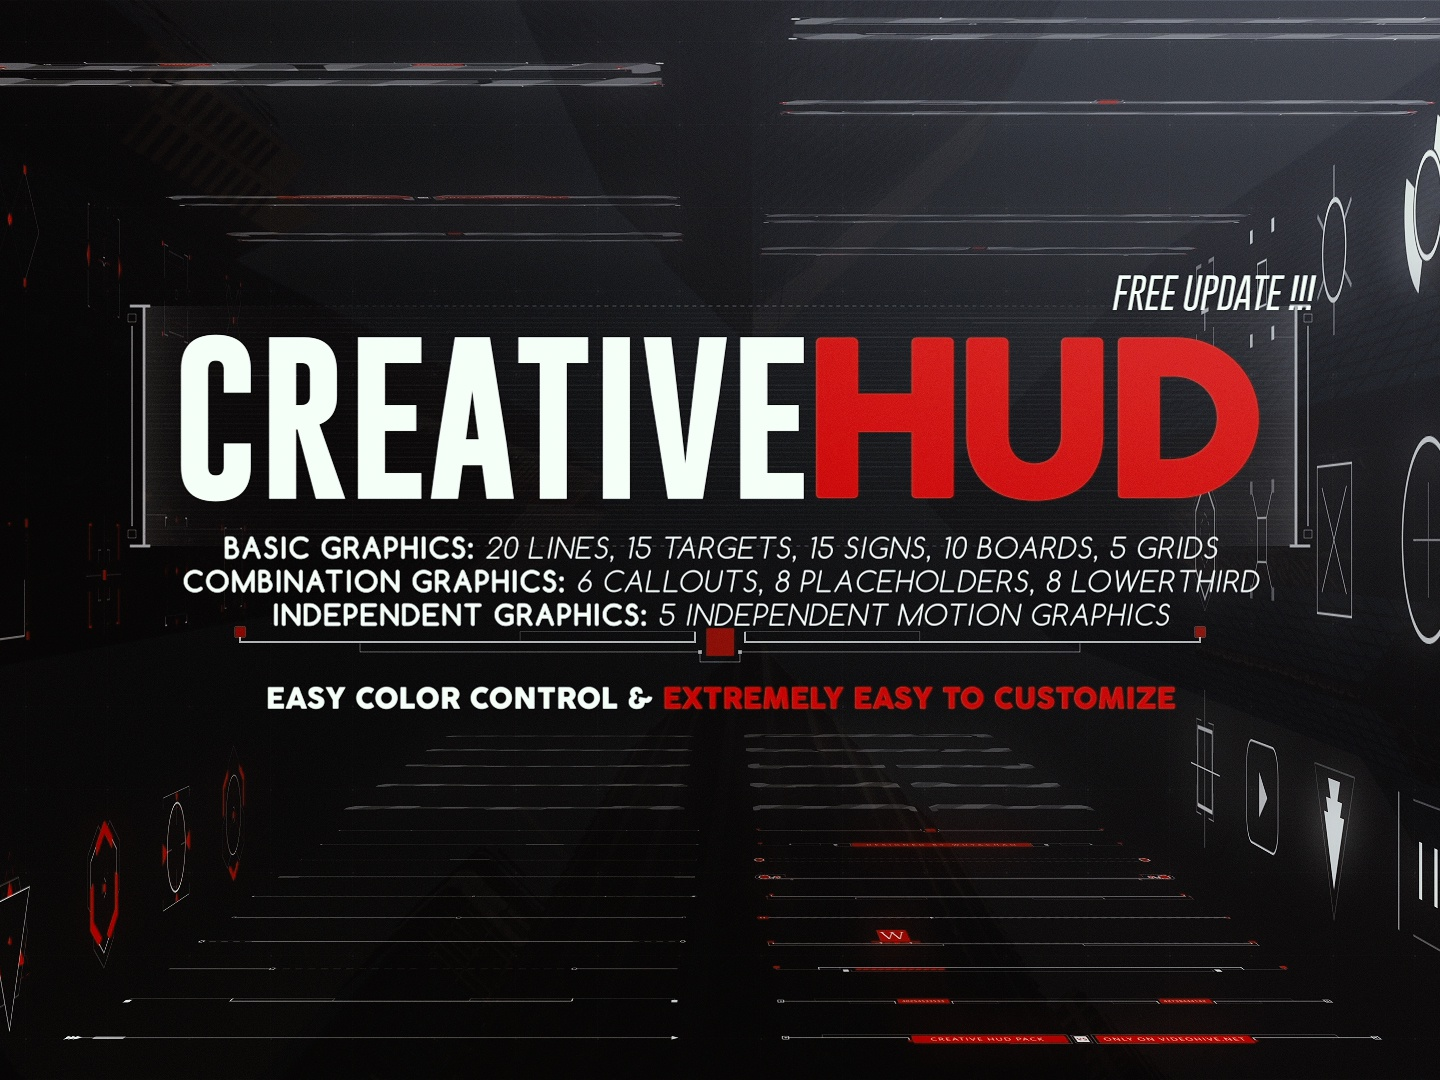 Creative HUD - After Effects Project File by Wuyachao on